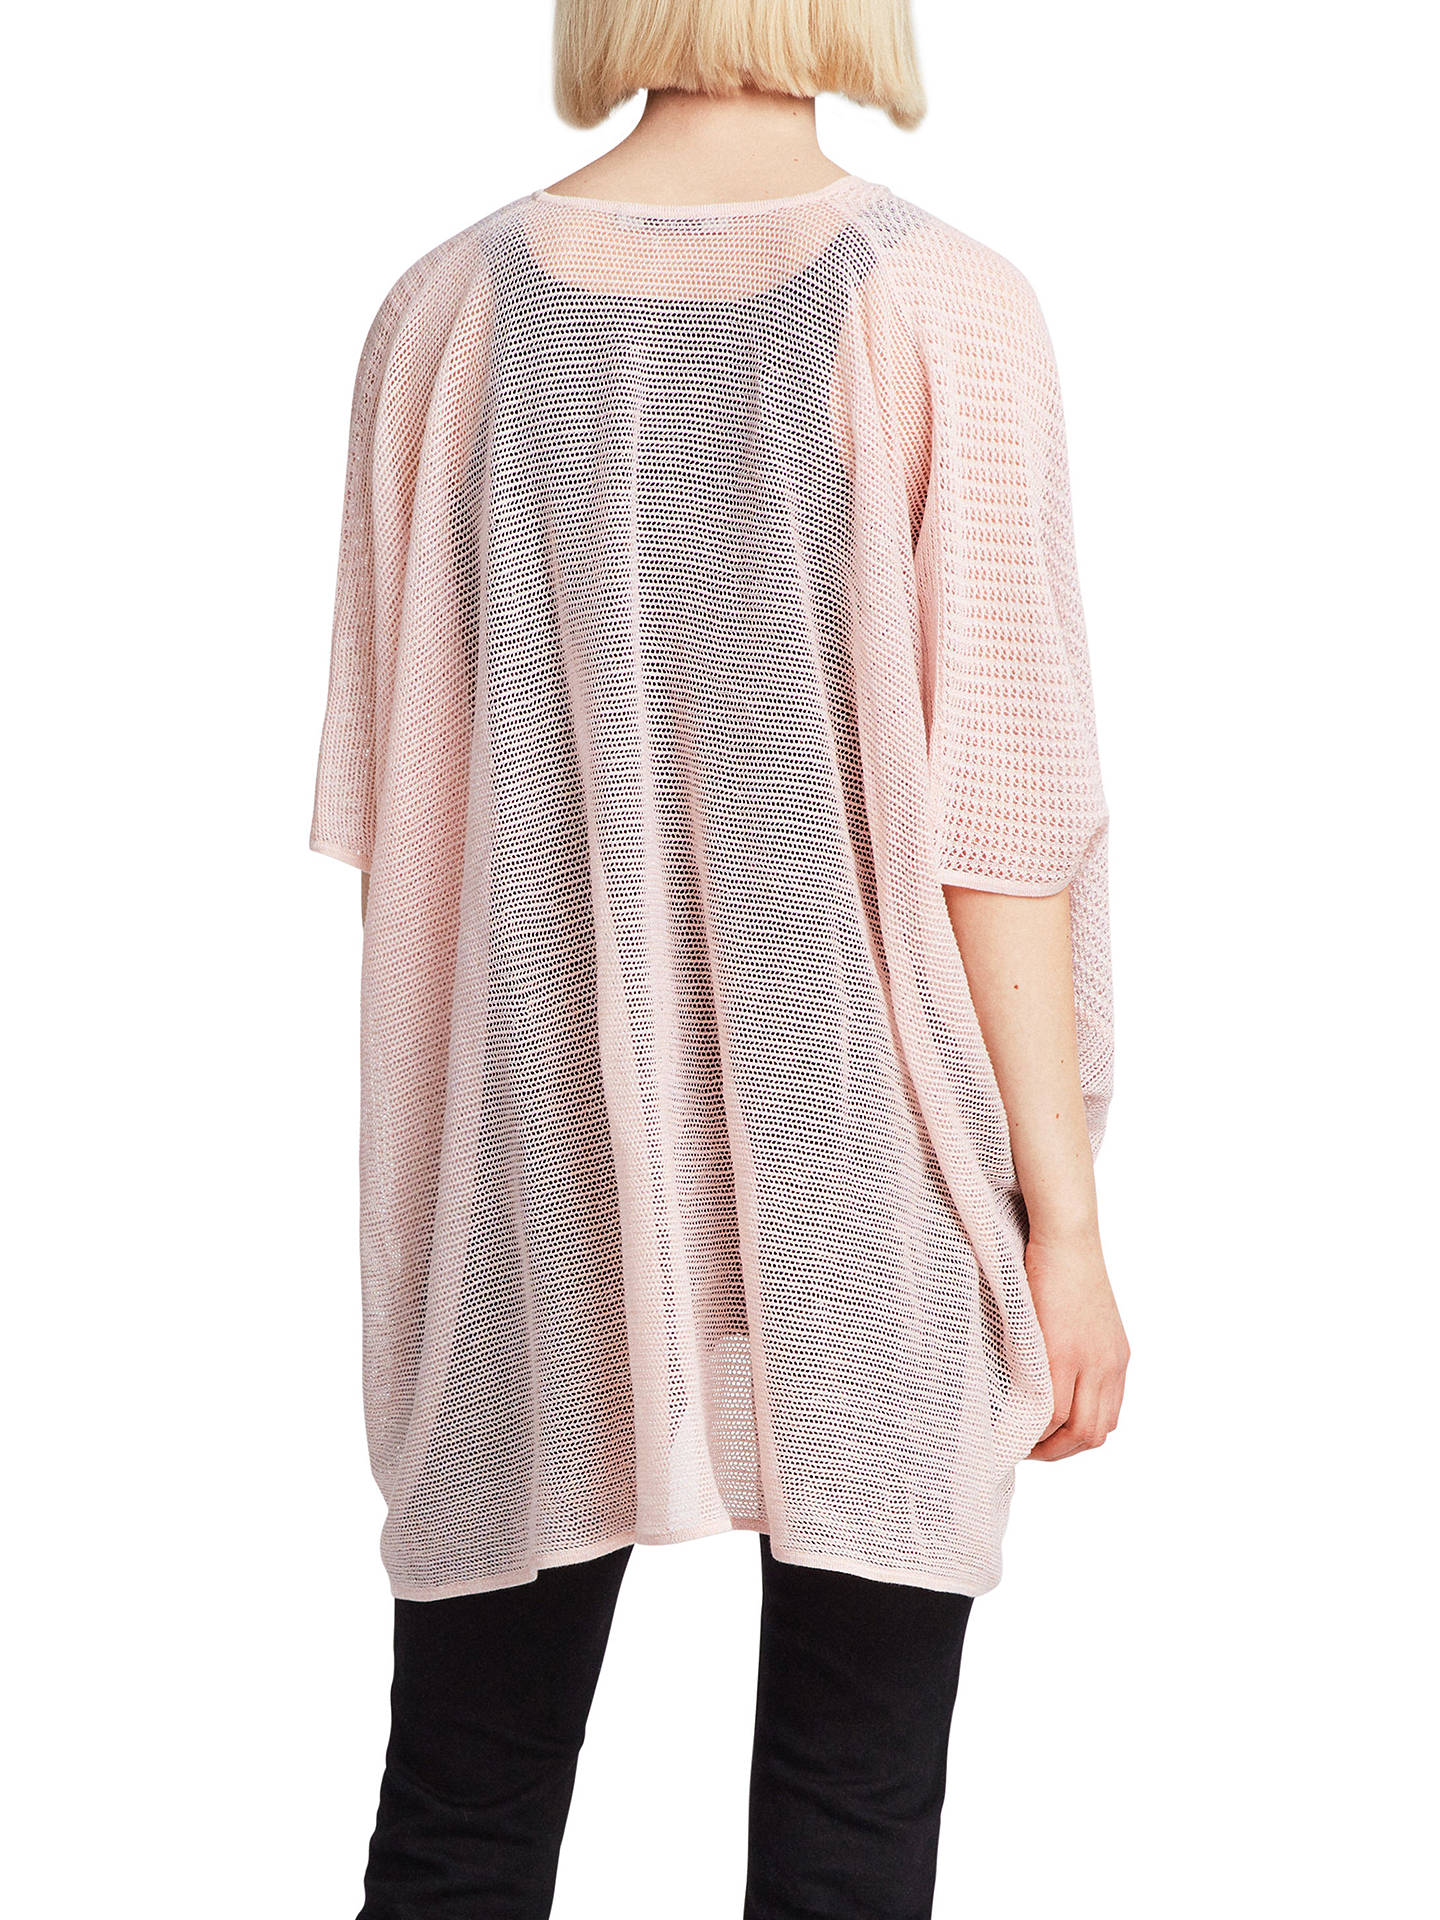 BuyAllSaints Itat Twist Knit Top, Candy Pink, XS Online at johnlewis.com